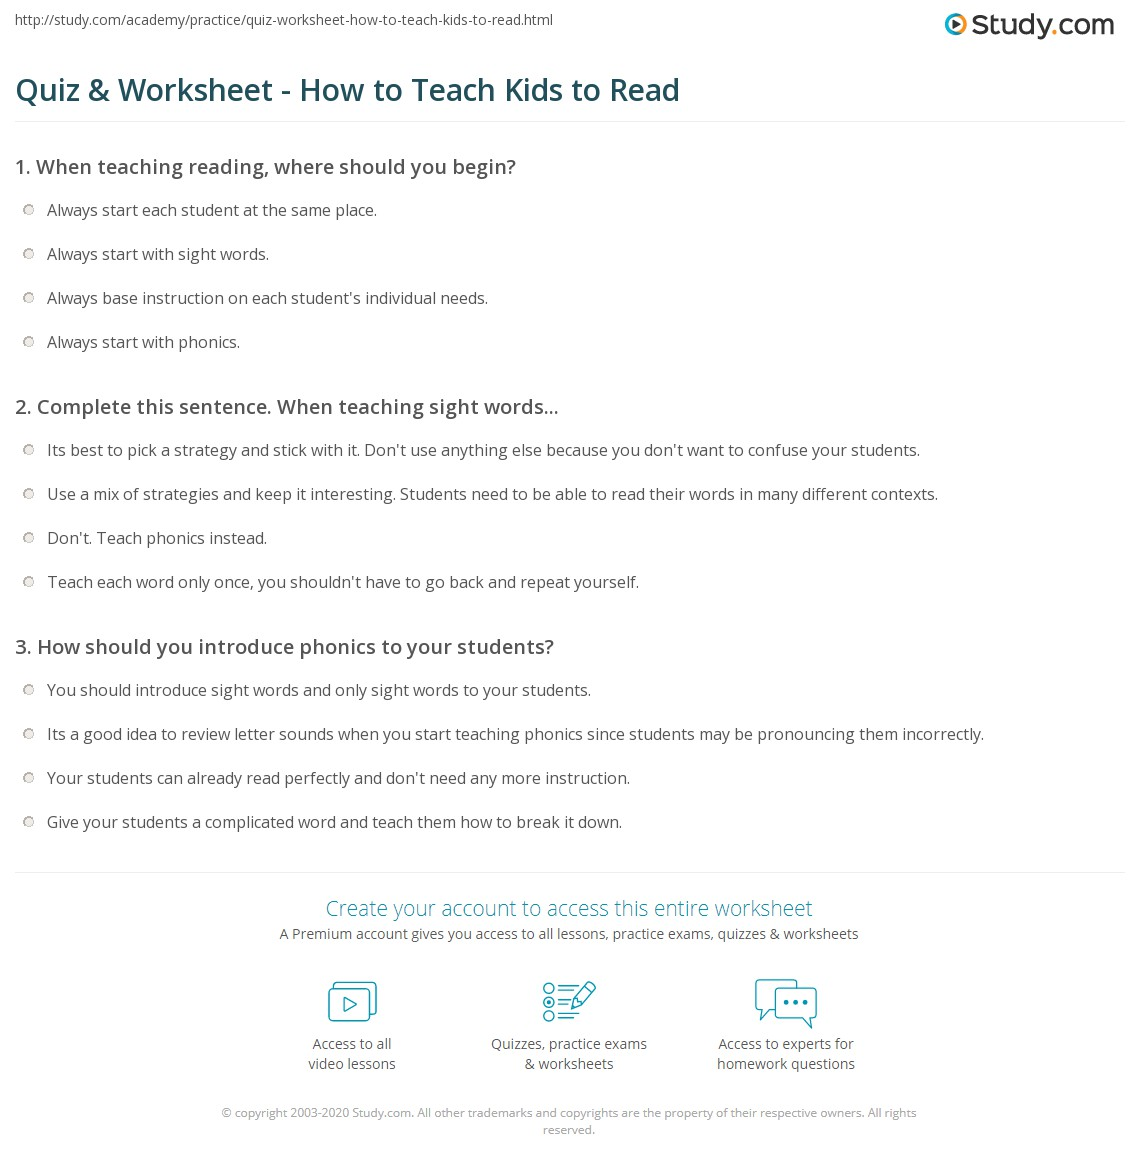 Quiz & Worksheet - How to Teach Kids to Read | Study.com